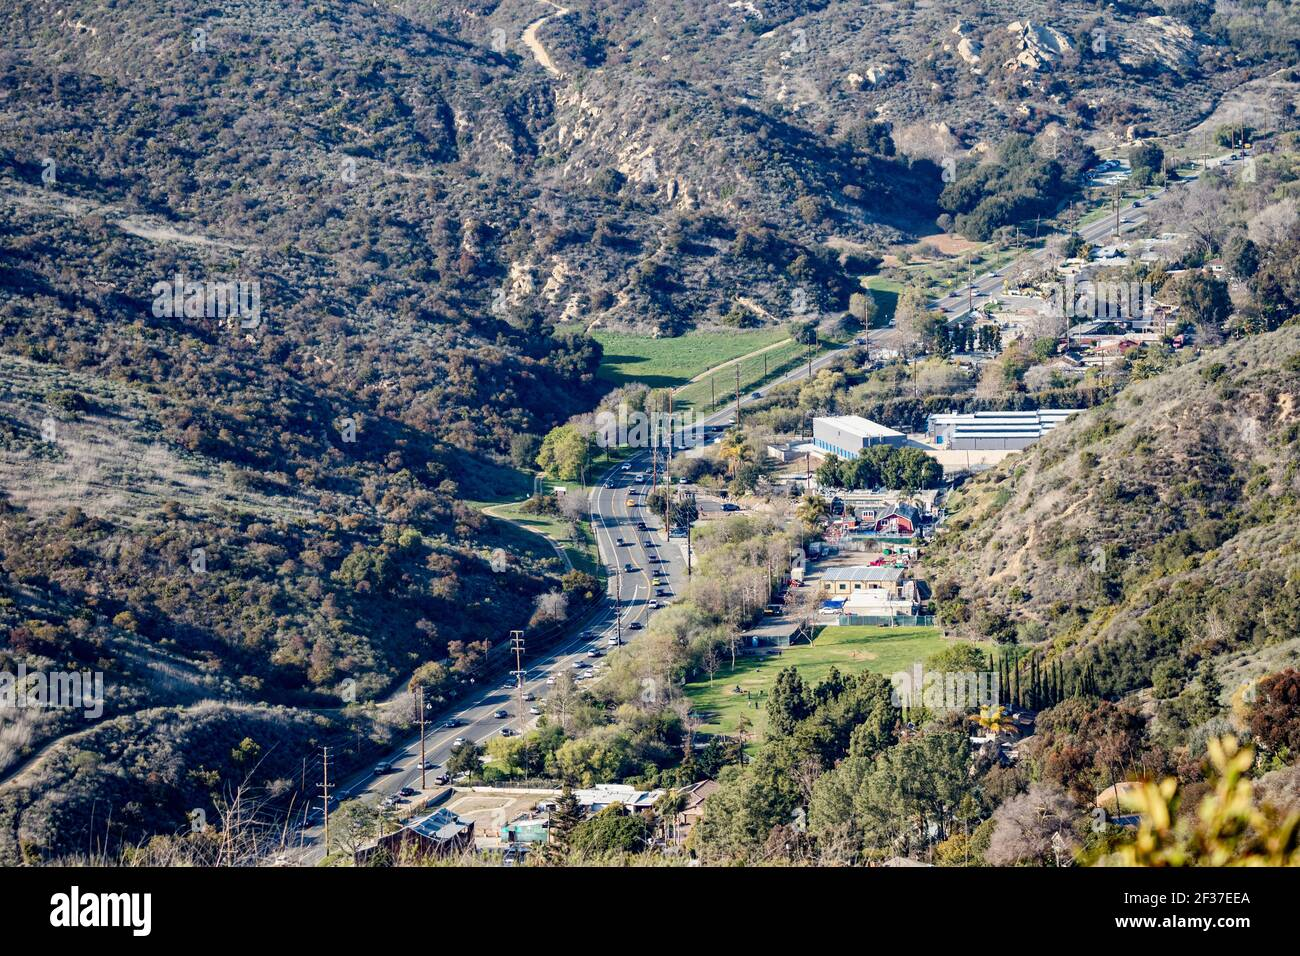 high angle view of a canyon and street in Laguna Beach, California, USA. March 13, 2021 Stock Photo